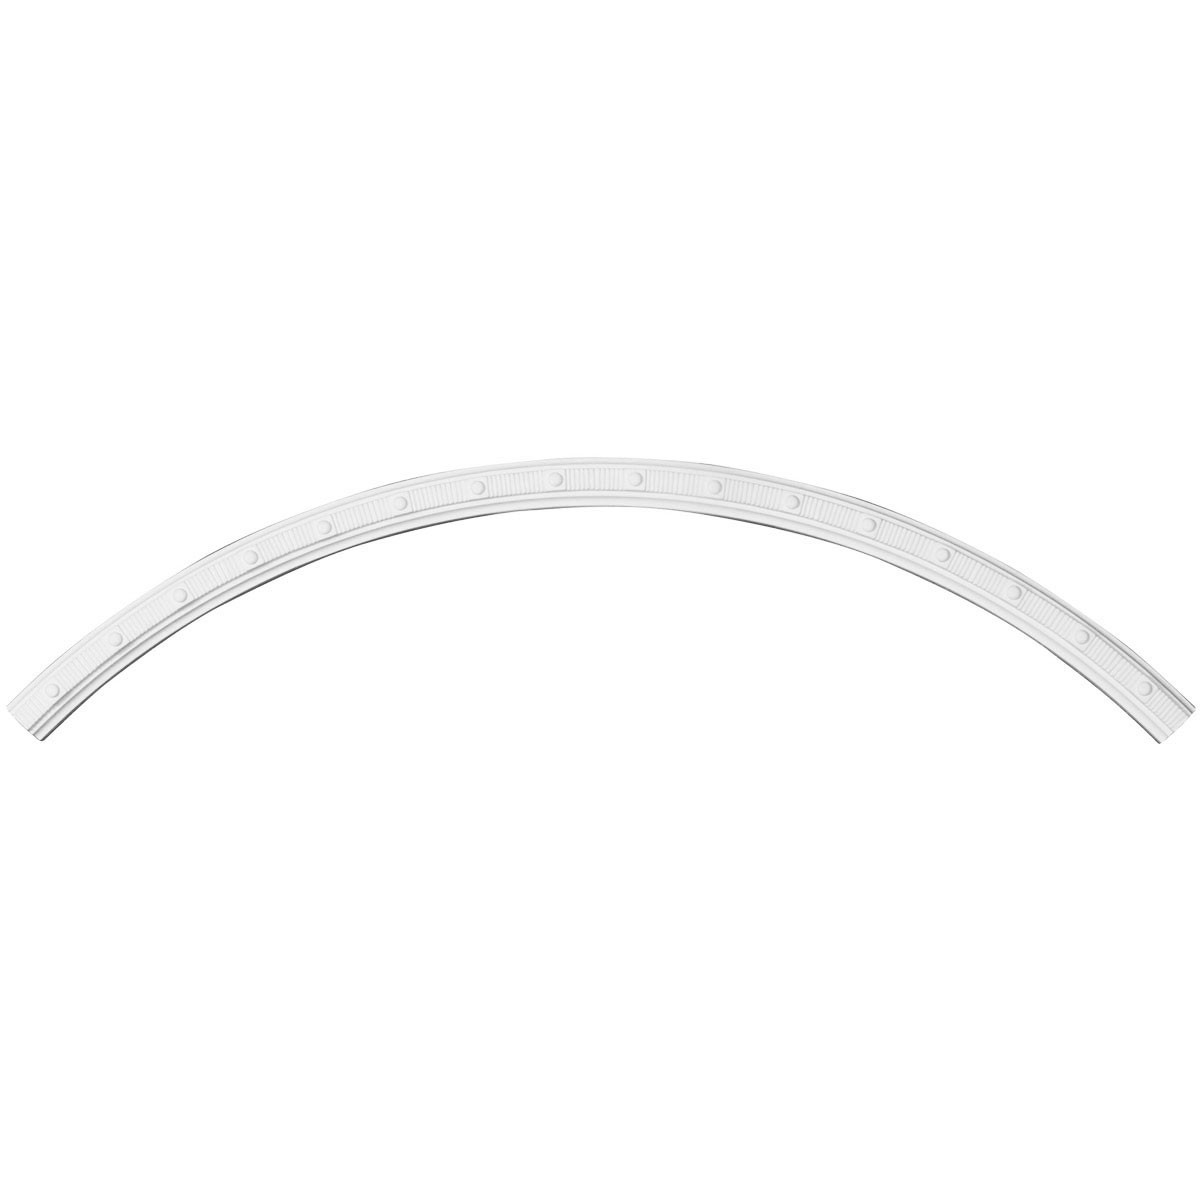 """EM-CR42SE - 41 3/4""""OD x 39 3/8""""ID x 1 1/4""""W x 3/4""""P Seville Ceiling Ring (1/4 of complete circle)"""